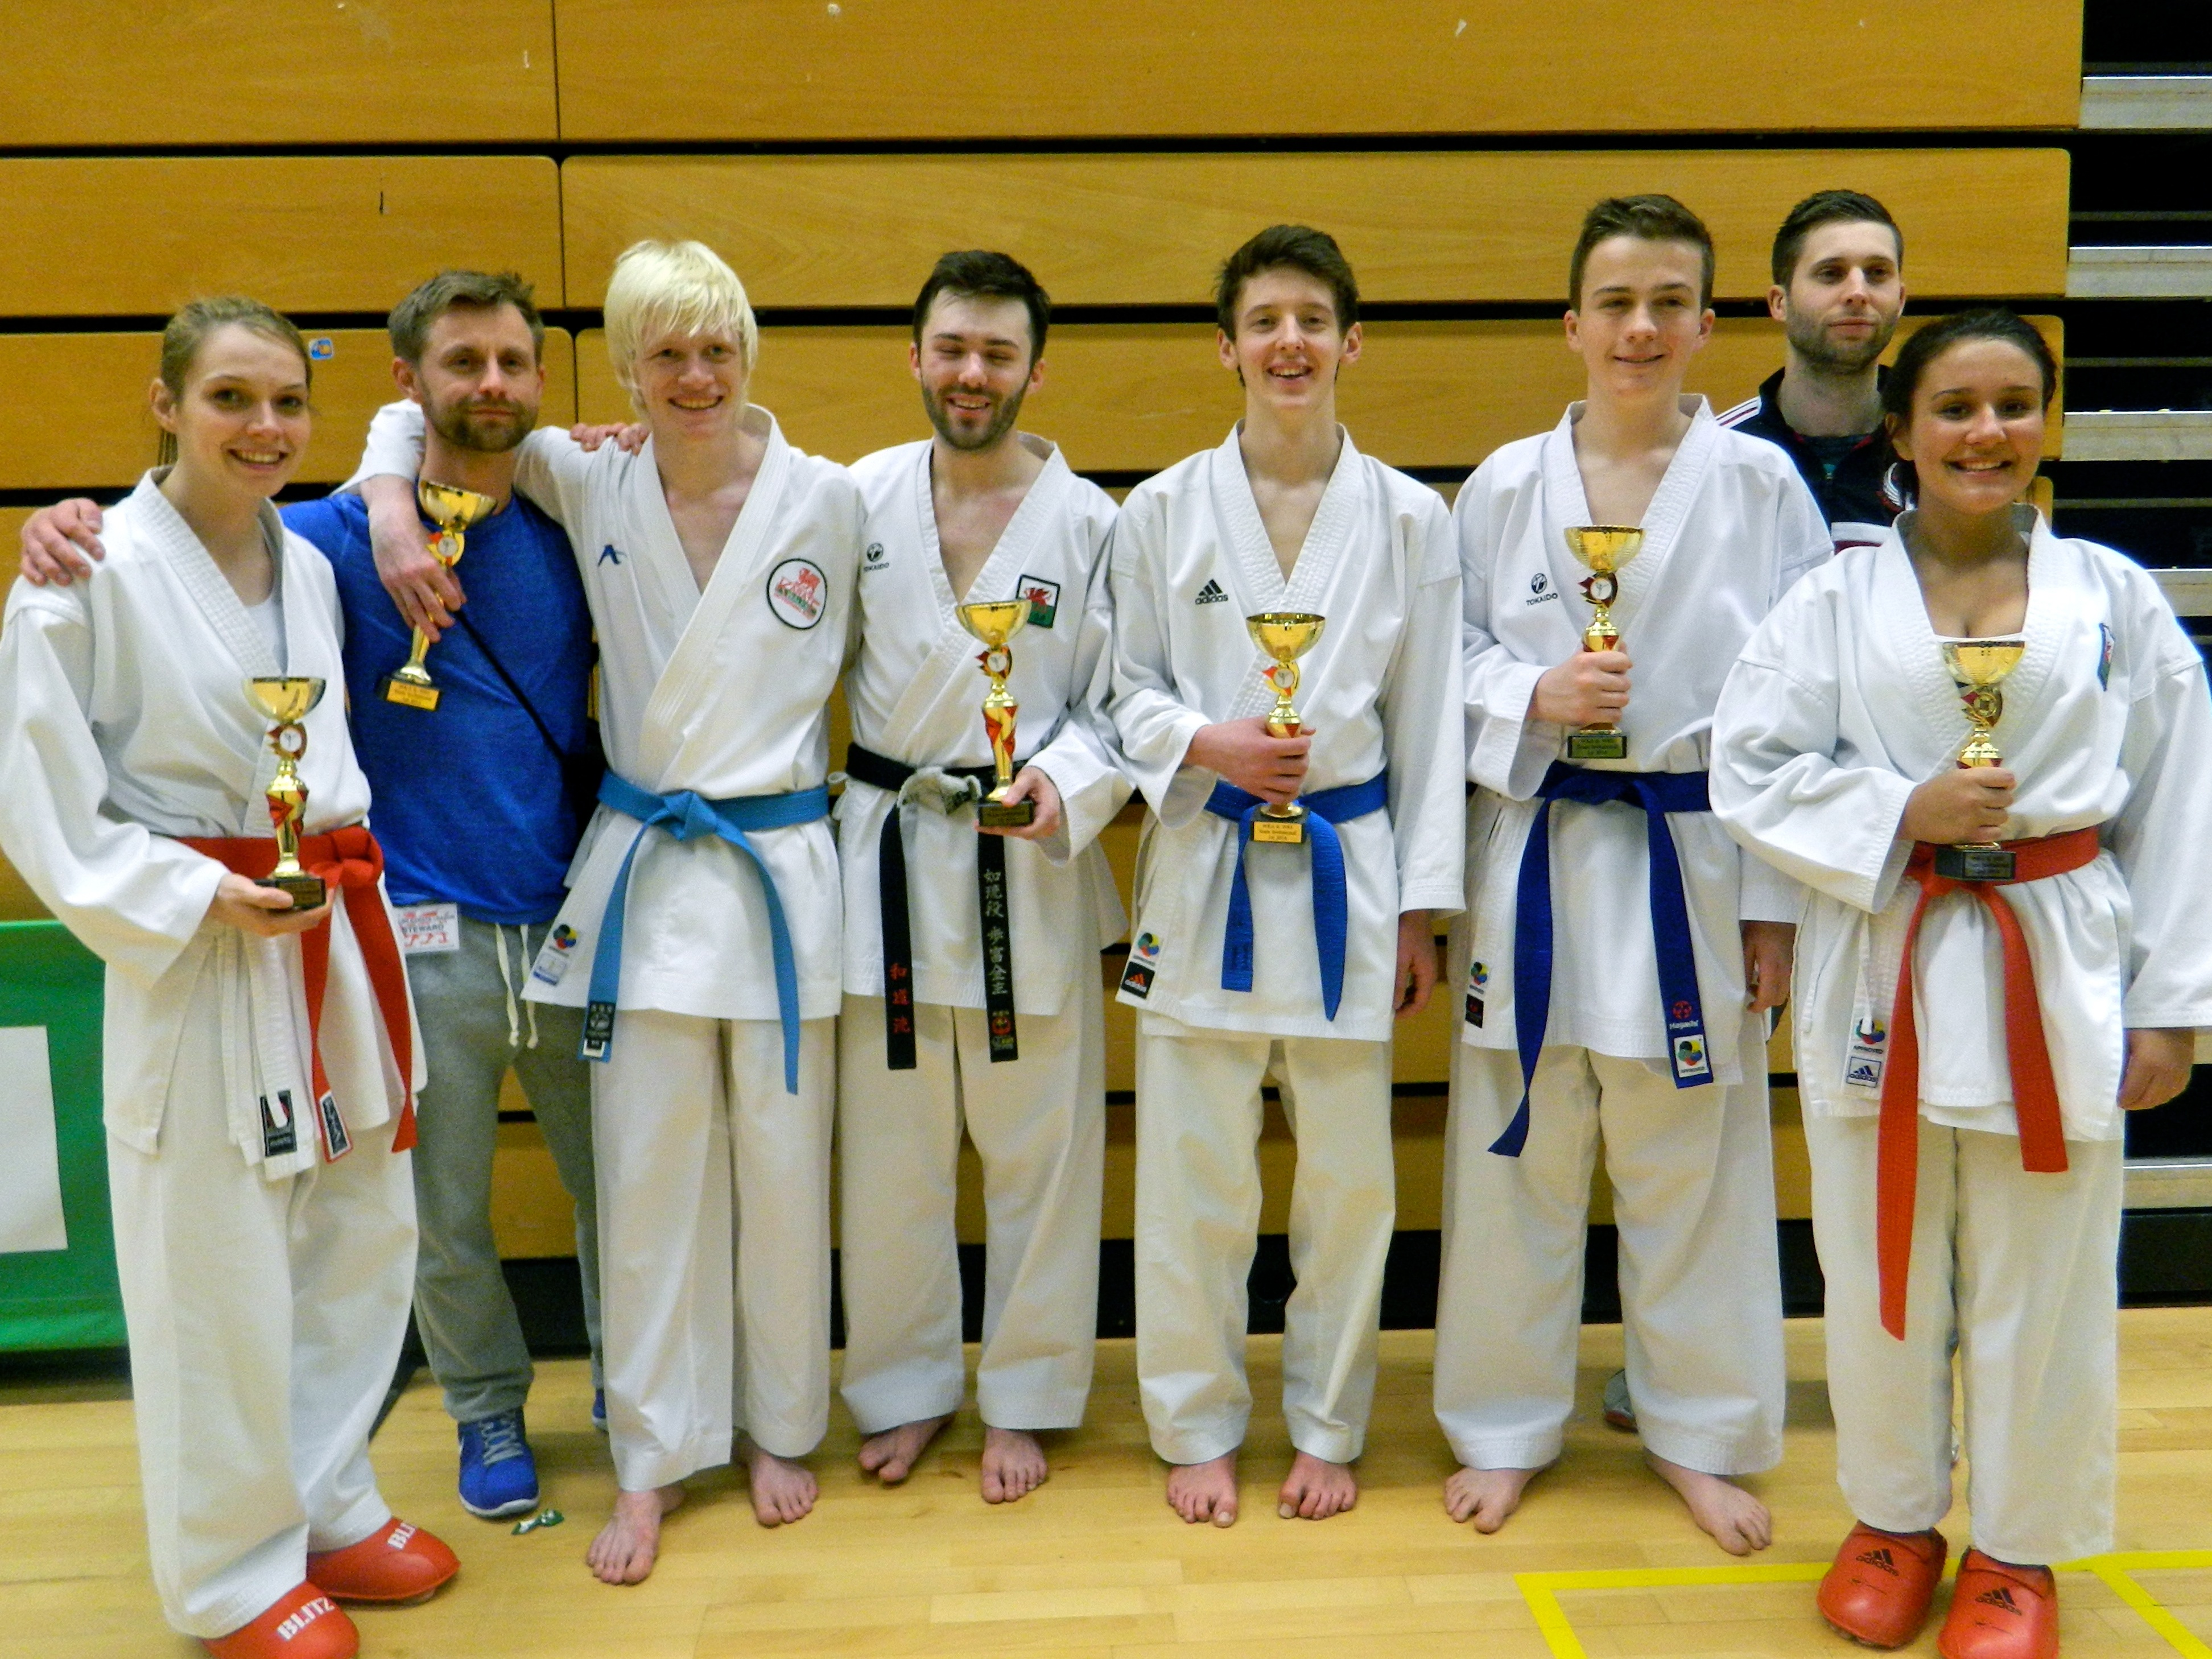 Karate Wales Mens and Ladies teams with Gareth Reynolds and David Godfrey